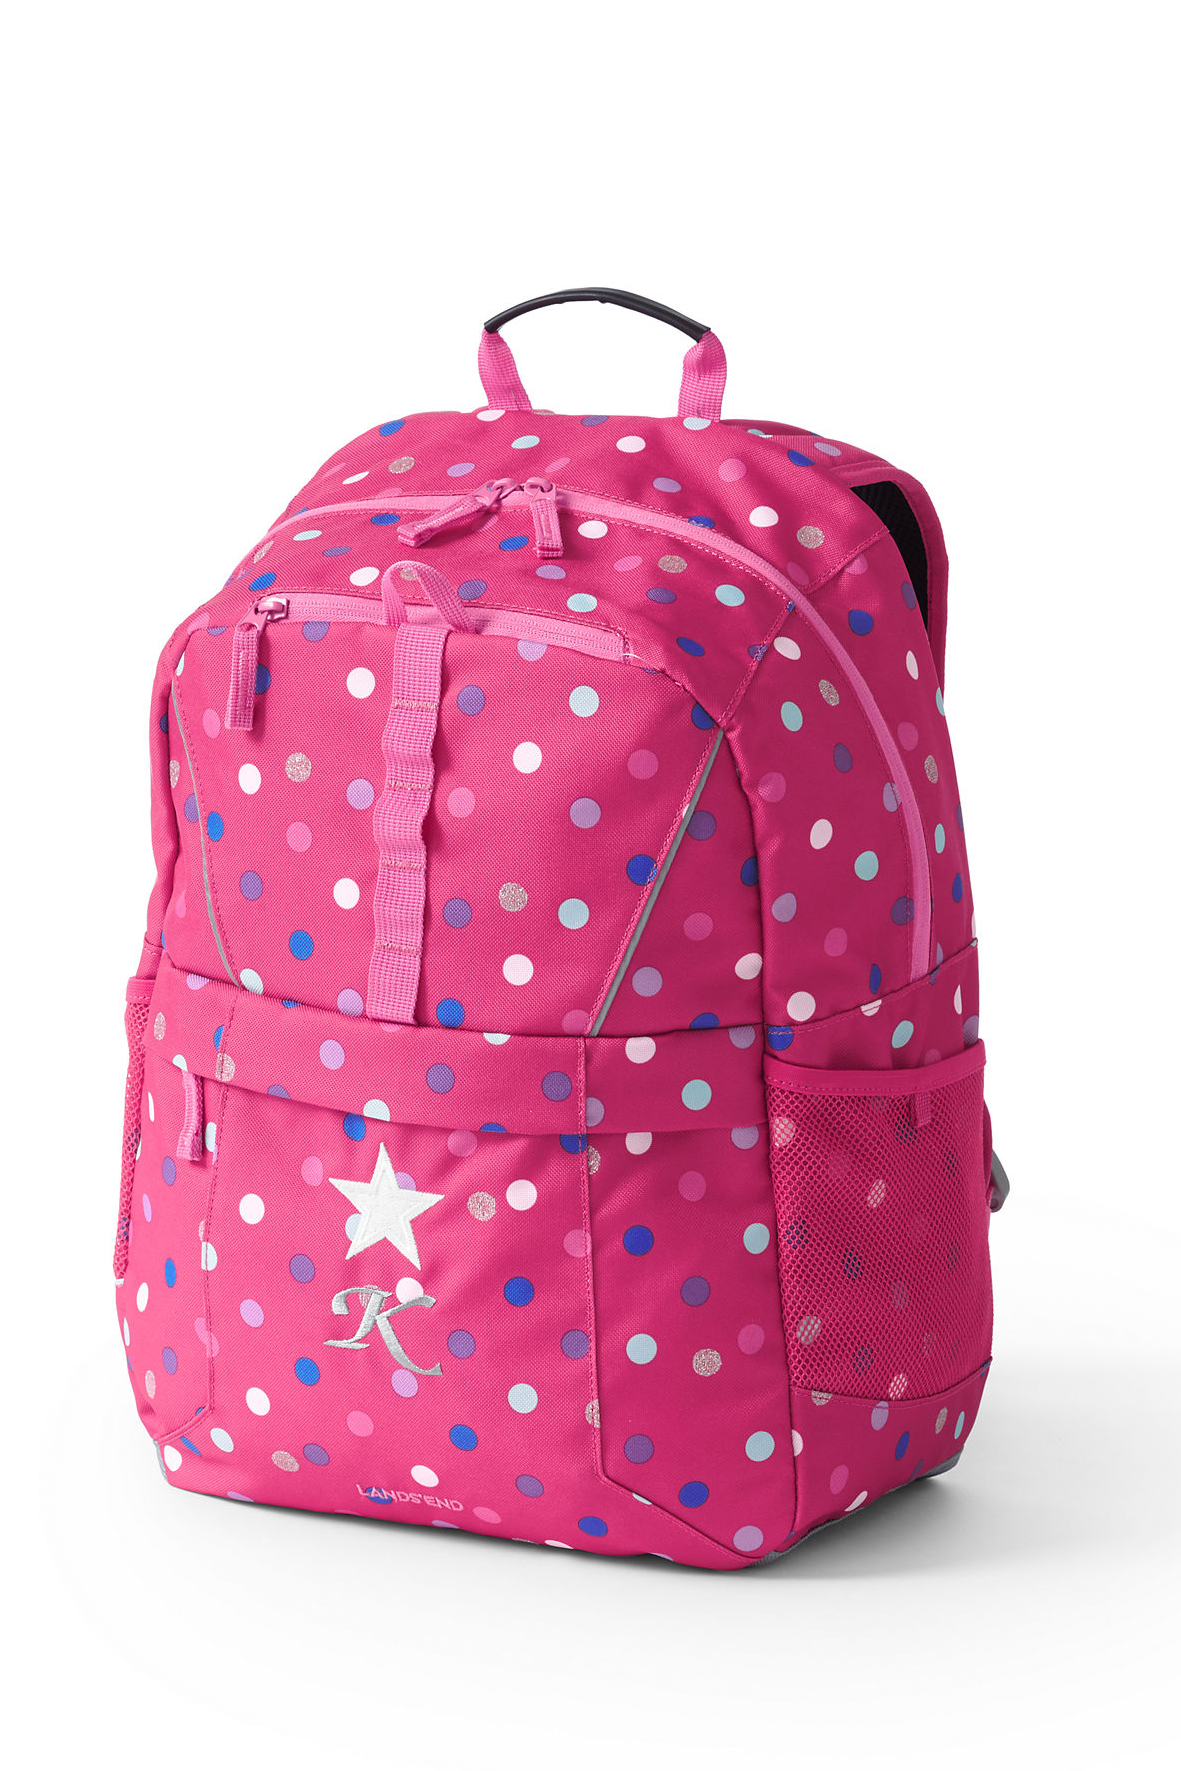 8 best kids backpacks for school top rated back to school